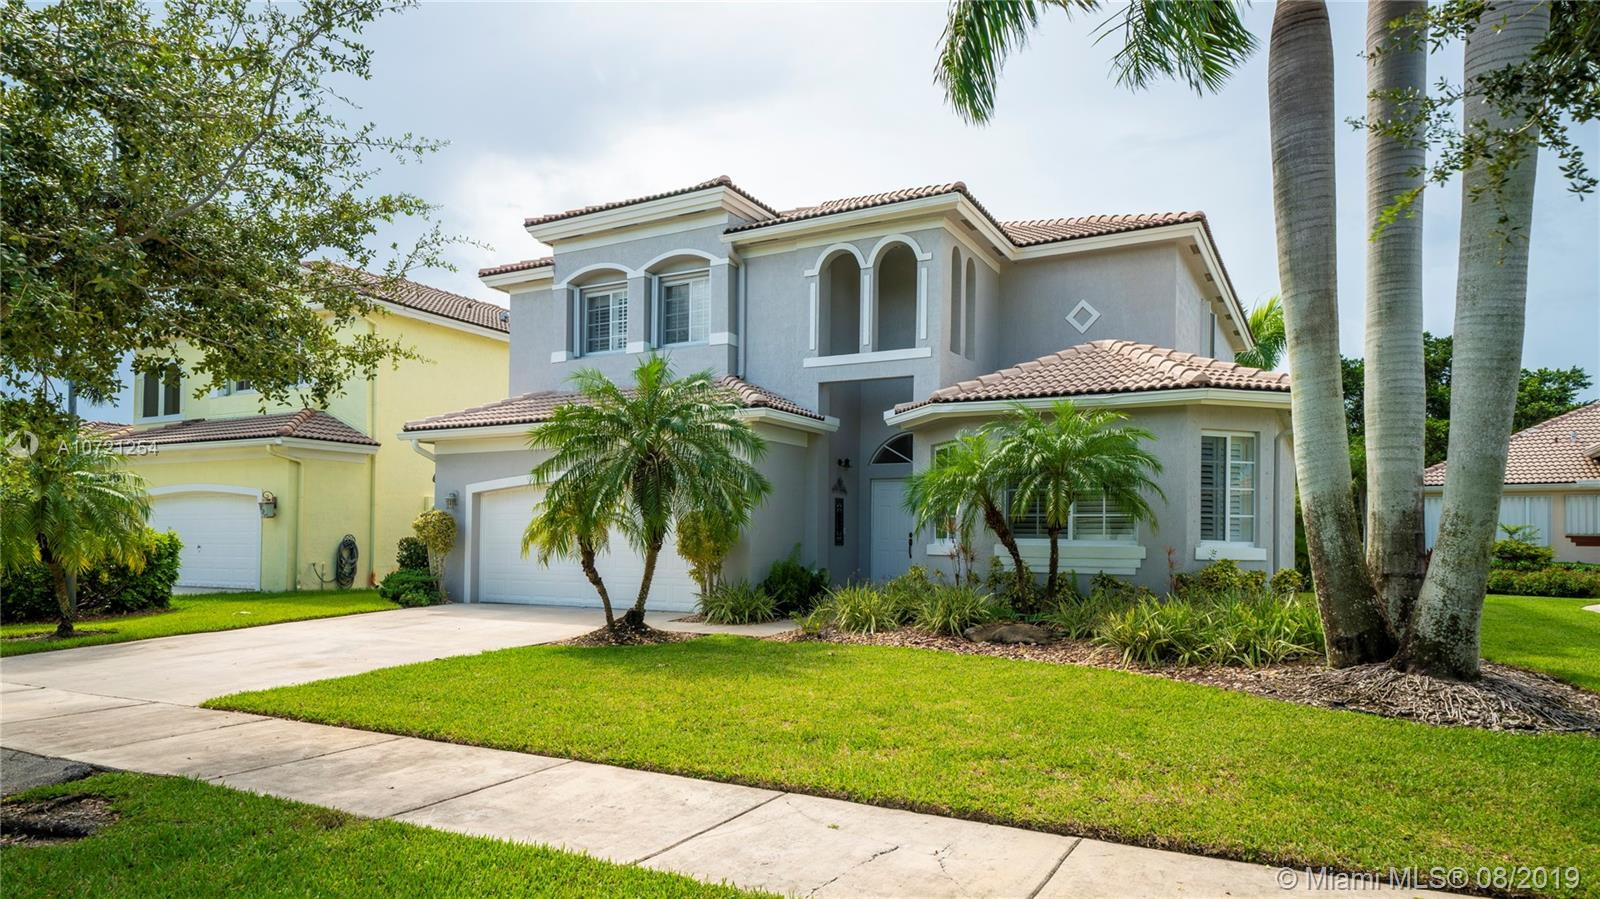 2810 Augusta Dr, Homestead, FL 33035 - Homestead, FL real estate listing